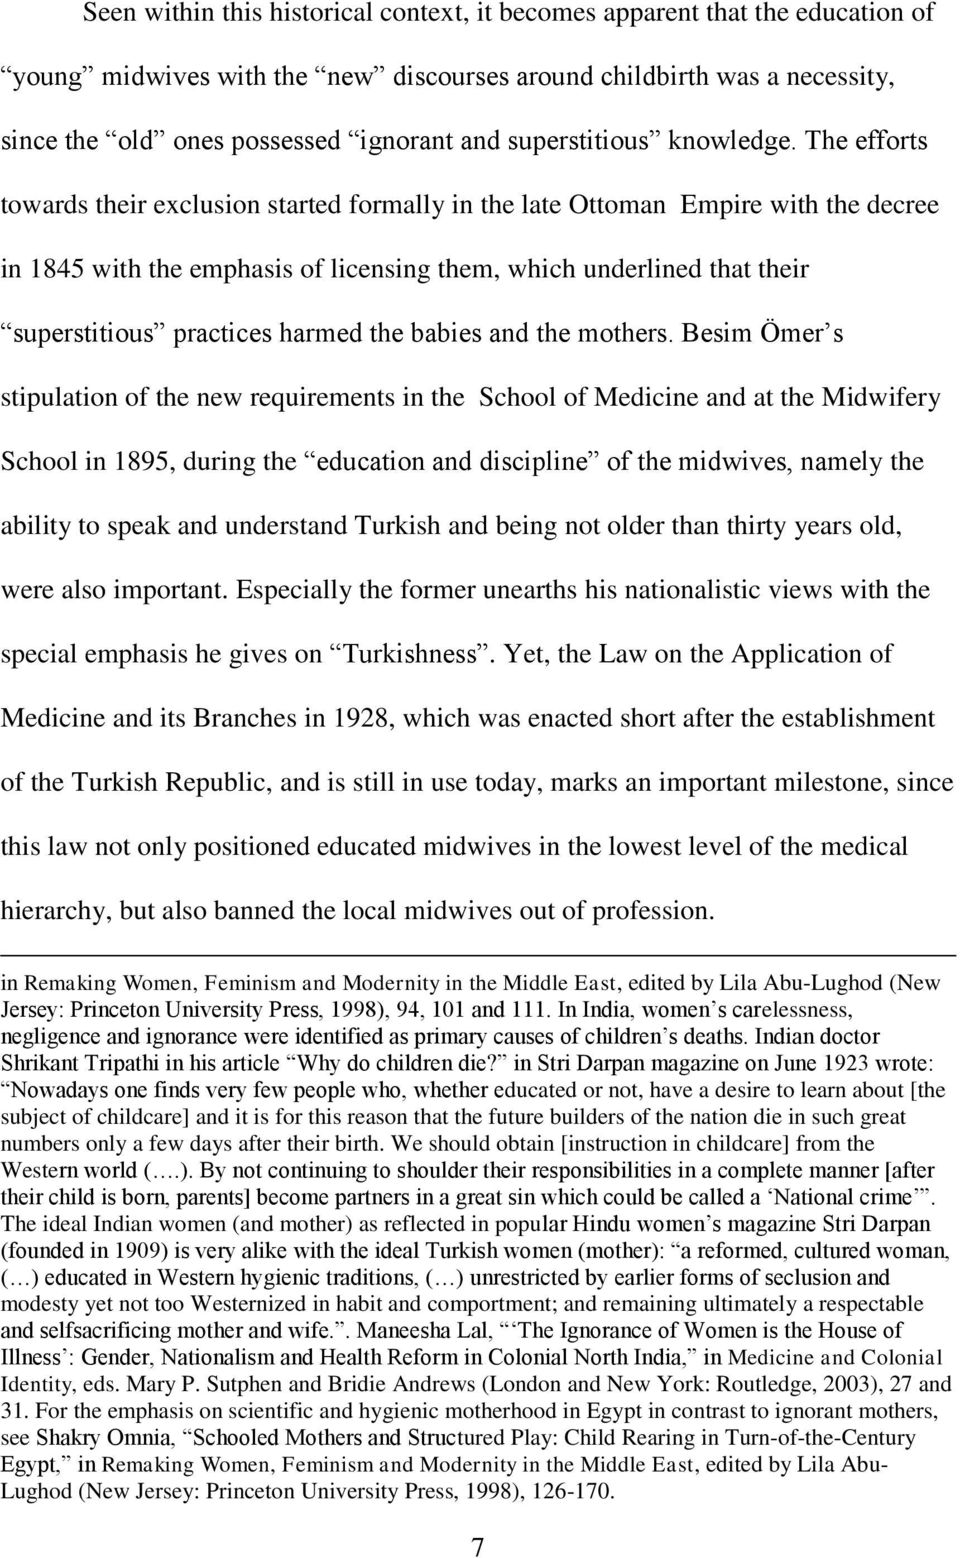 The efforts towards their exclusion started formally in the late Ottoman Empire with the decree in 1845 with the emphasis of licensing them, which underlined that their superstitious practices harmed